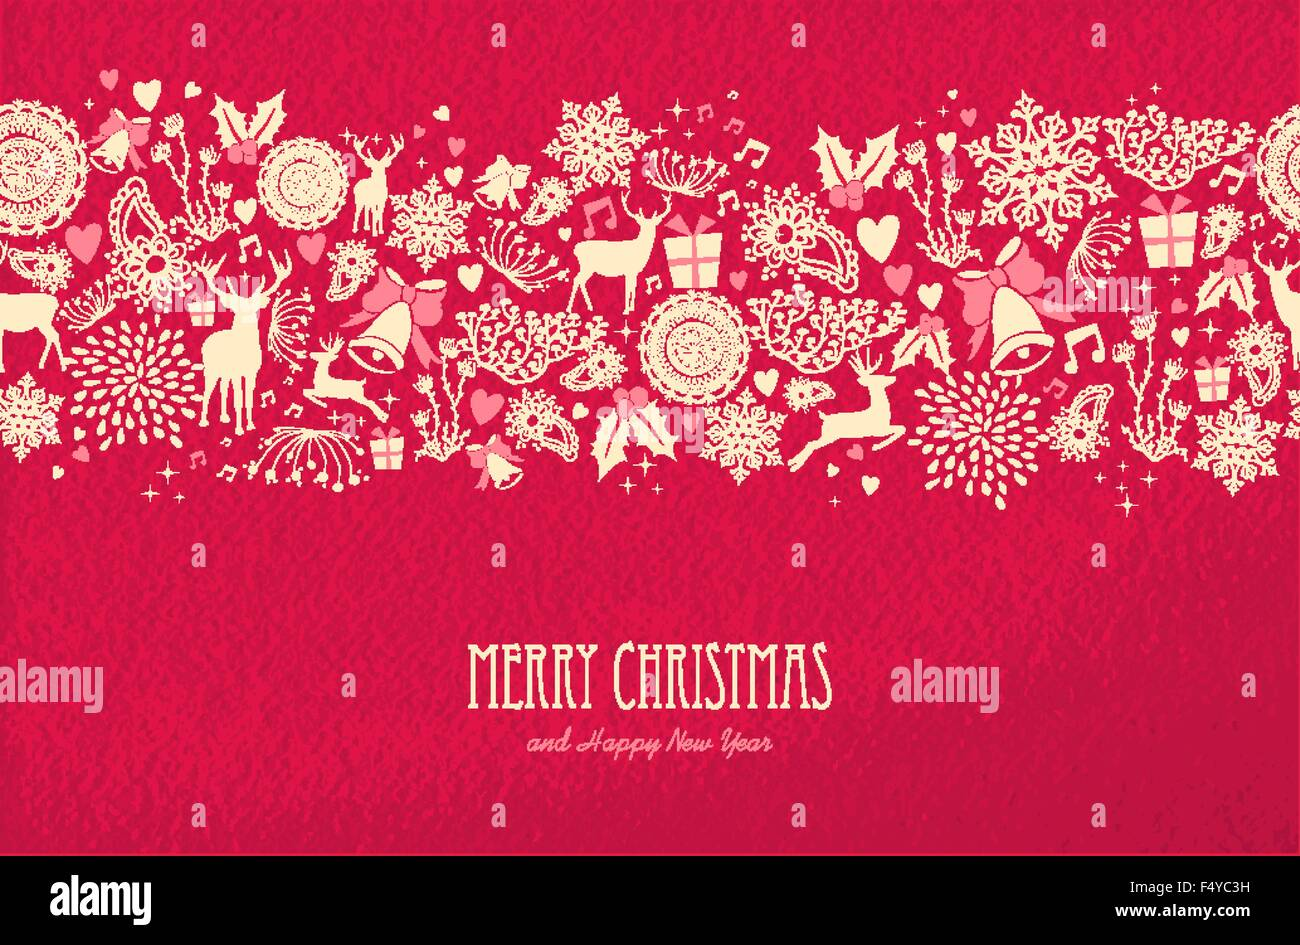 Merry Christmas Happy New Year Seamless Pattern Design On